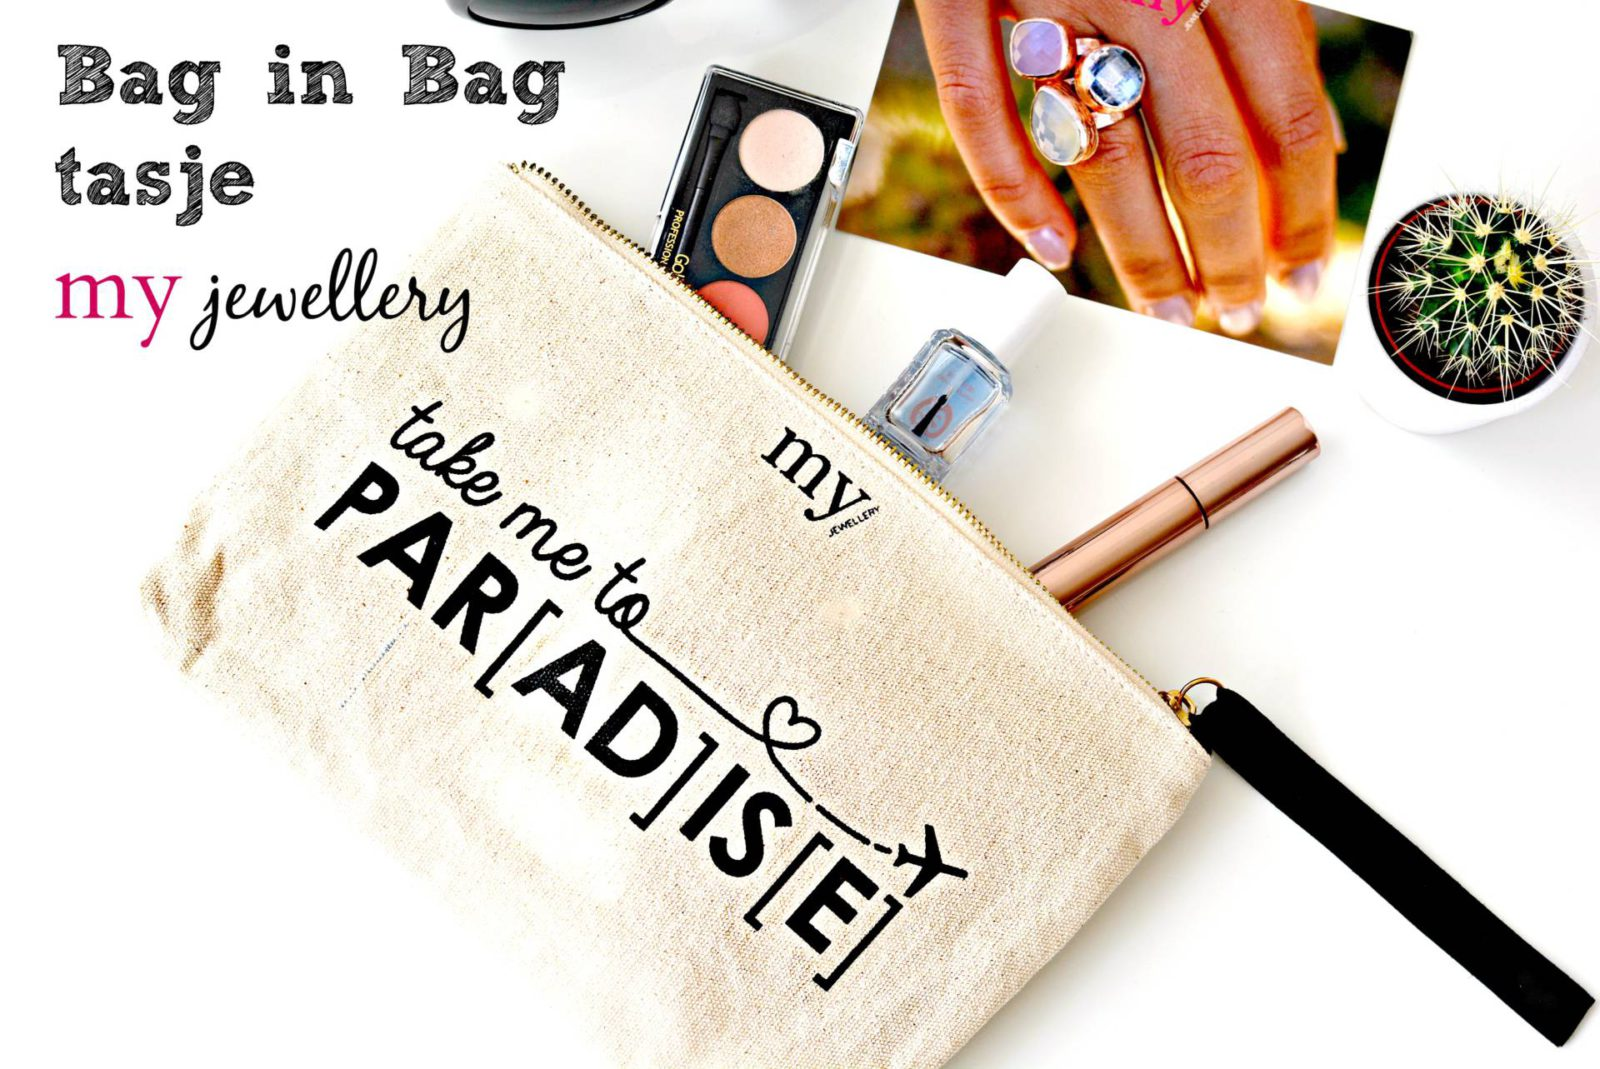 Take me to PARADISE bag in bag tasje My Jewellery